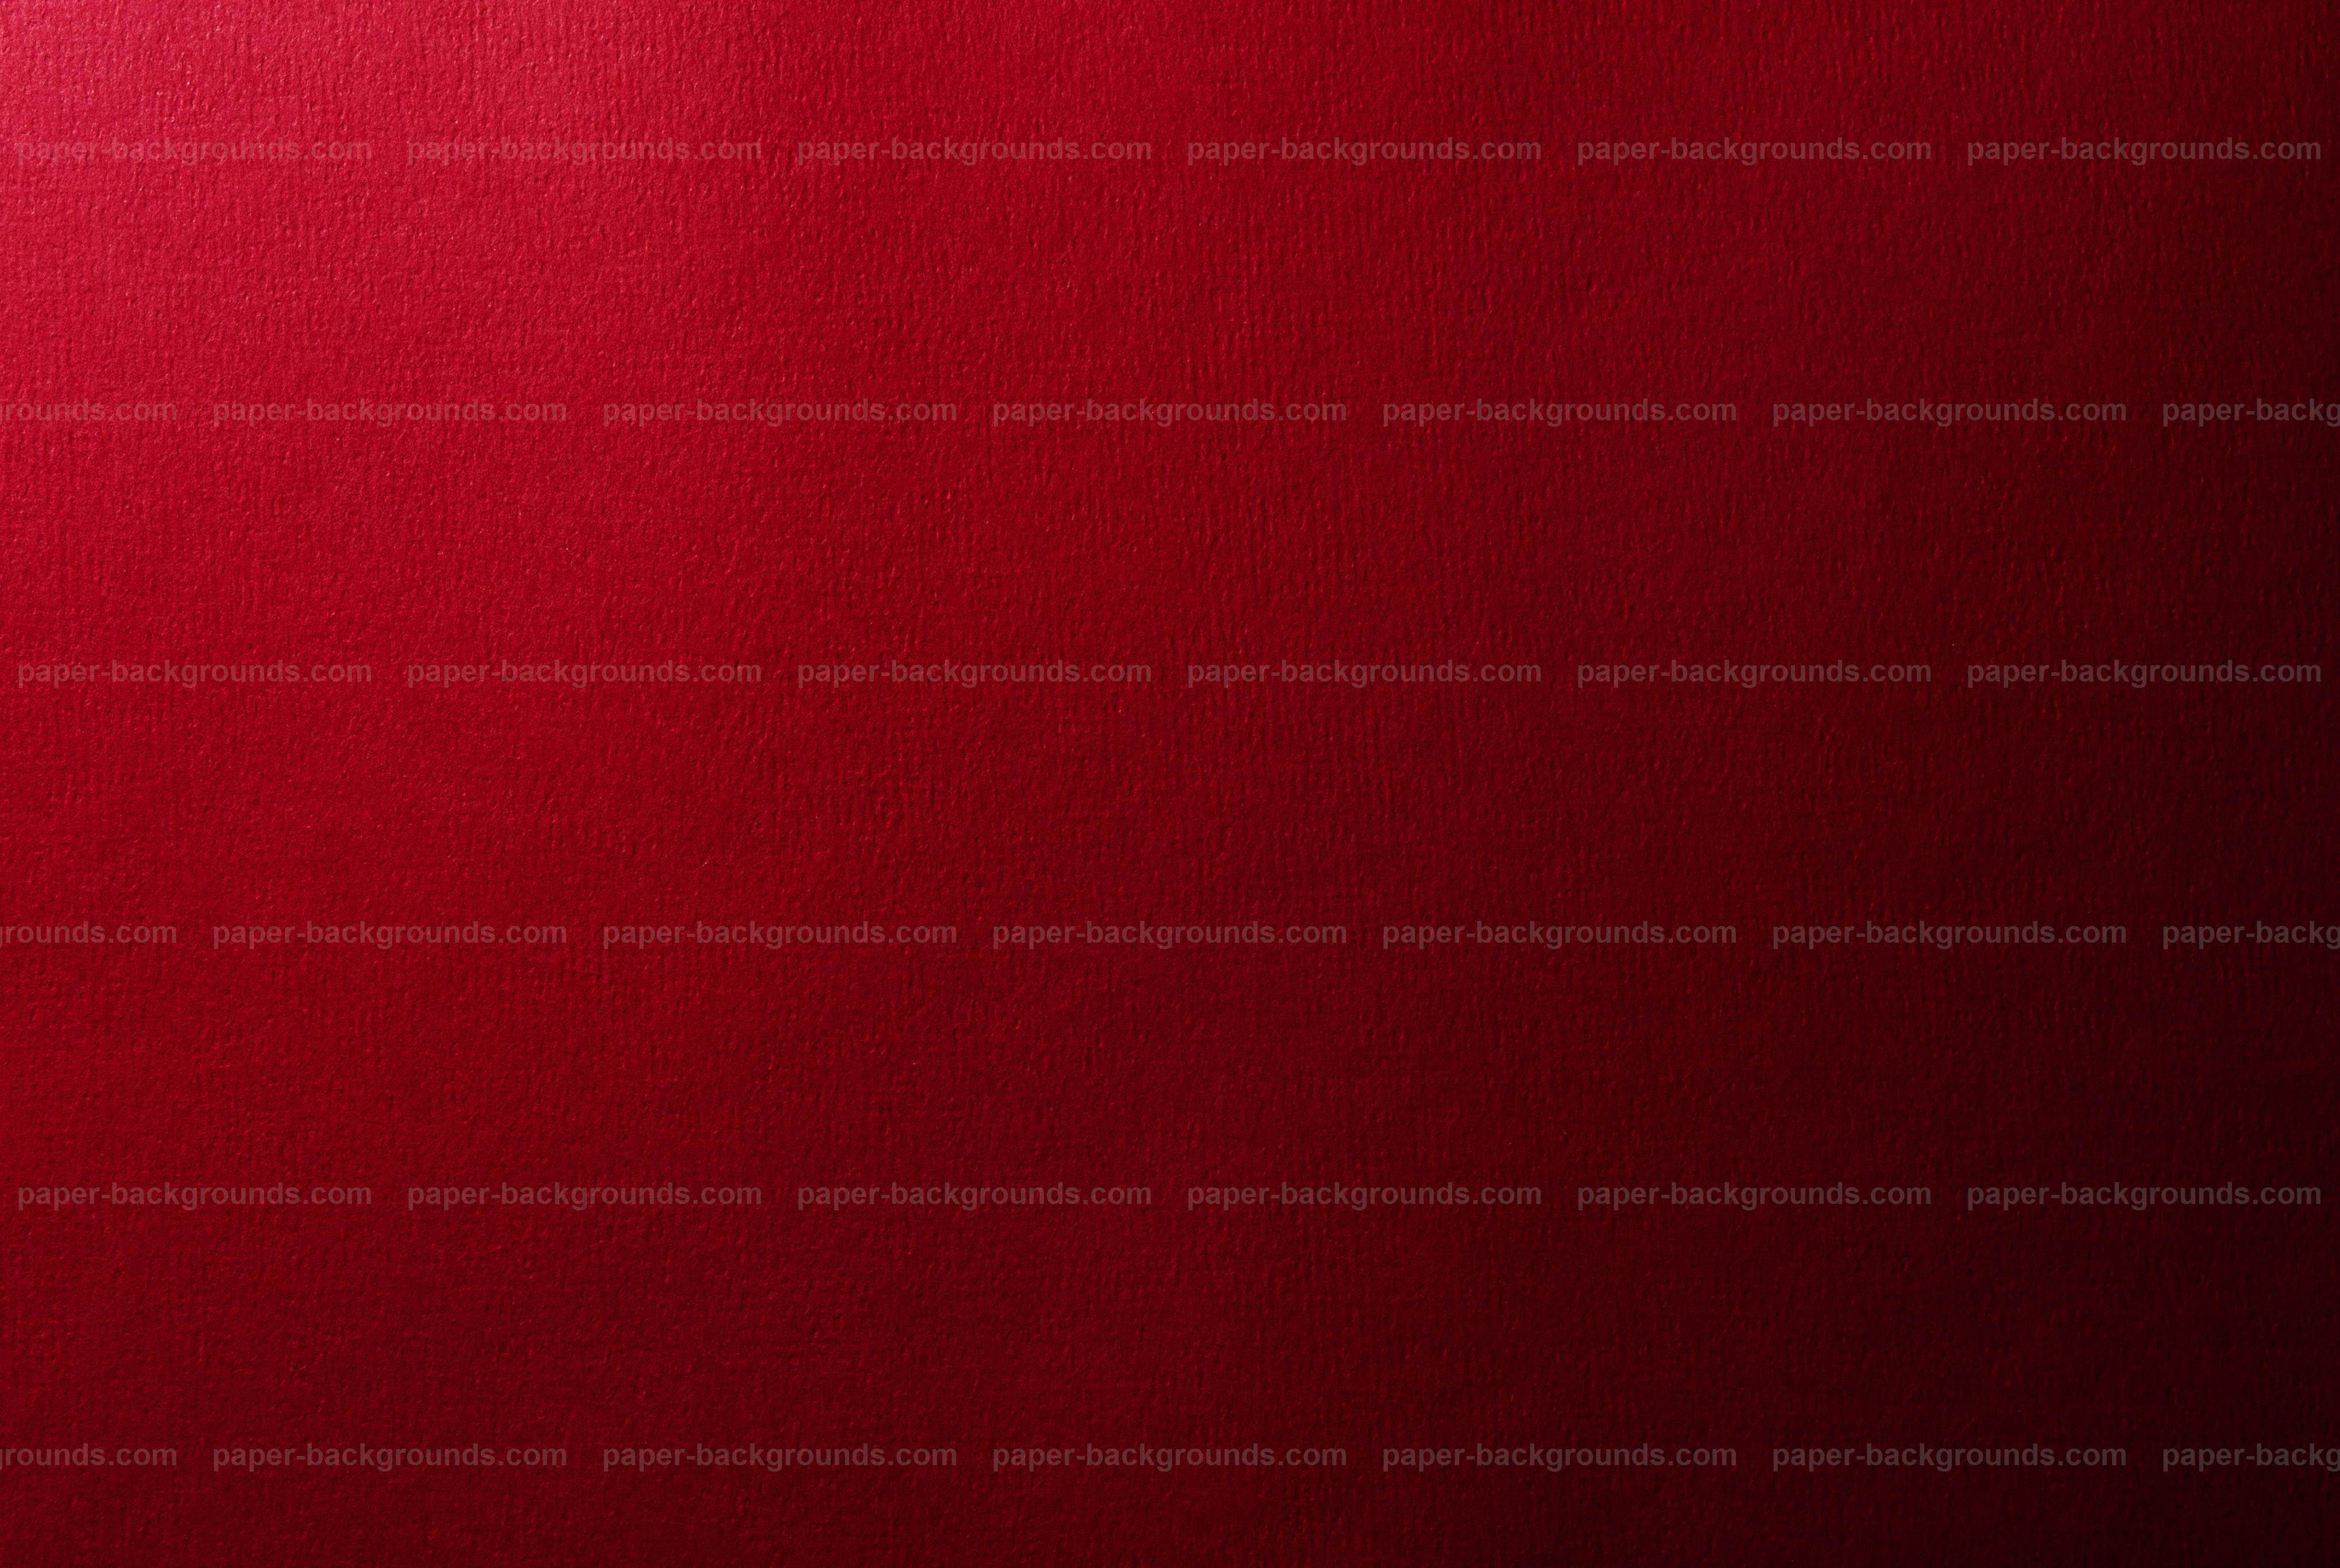 Dark Red Backgrounds